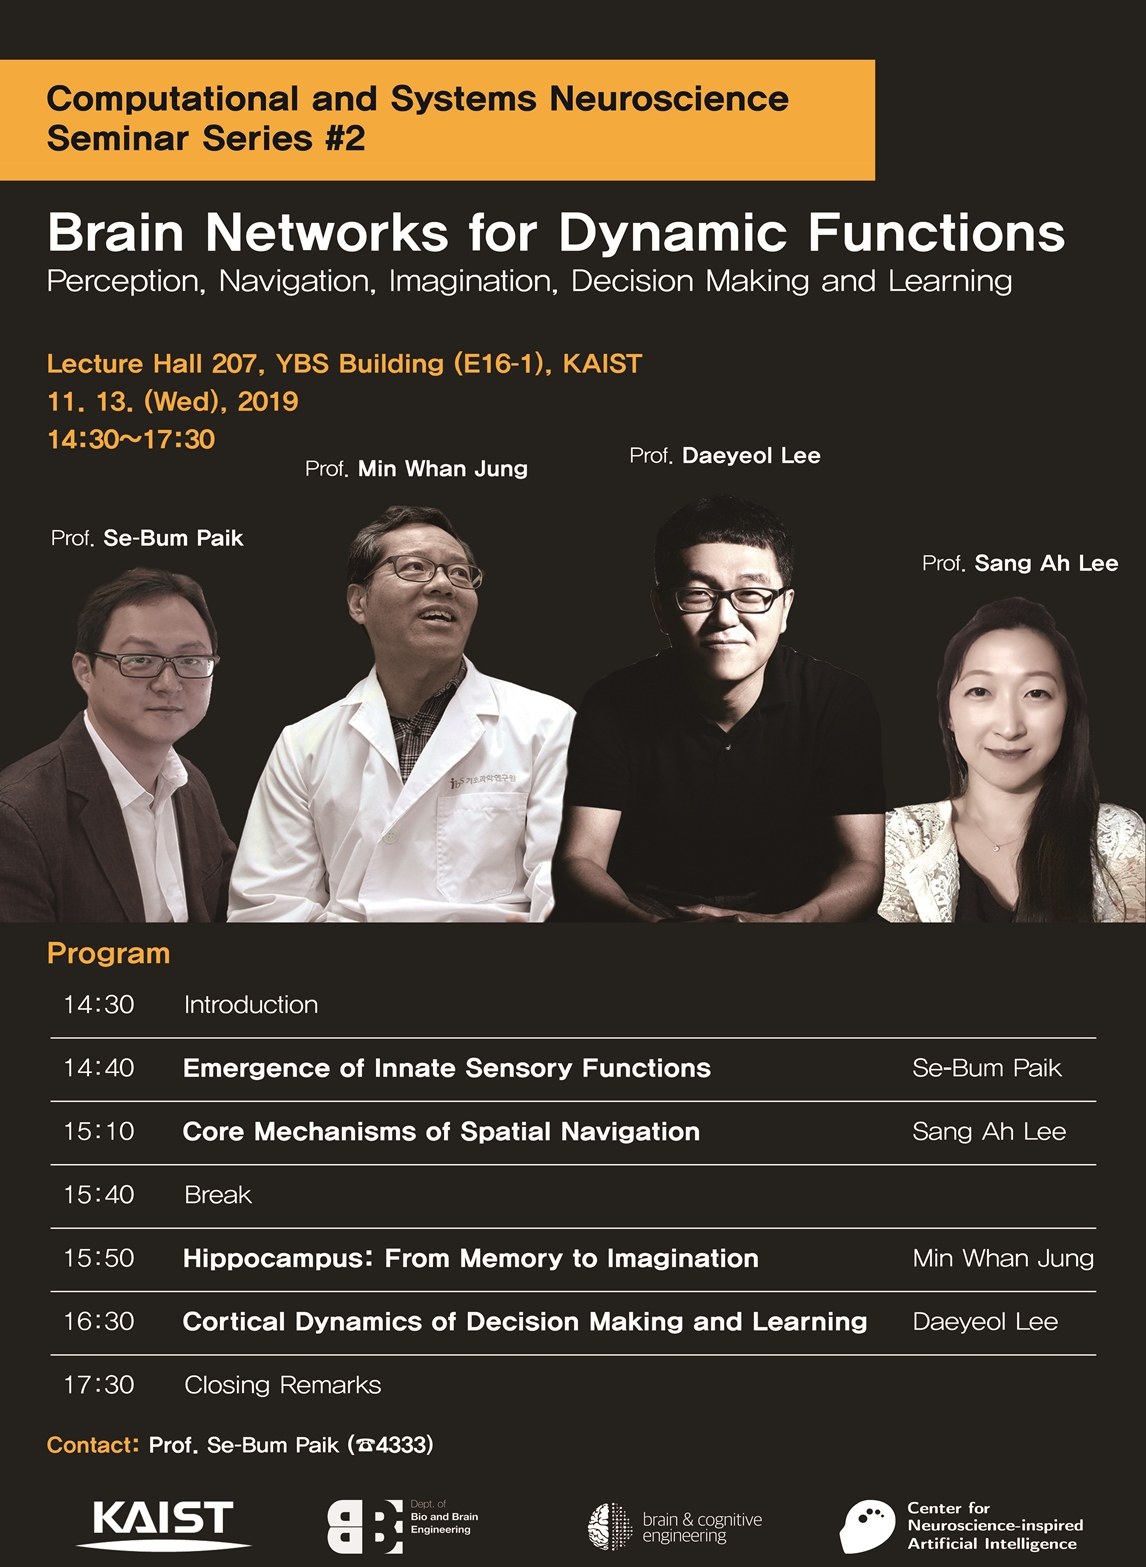 brain networks for dynamic functions_prof Paik.jpg